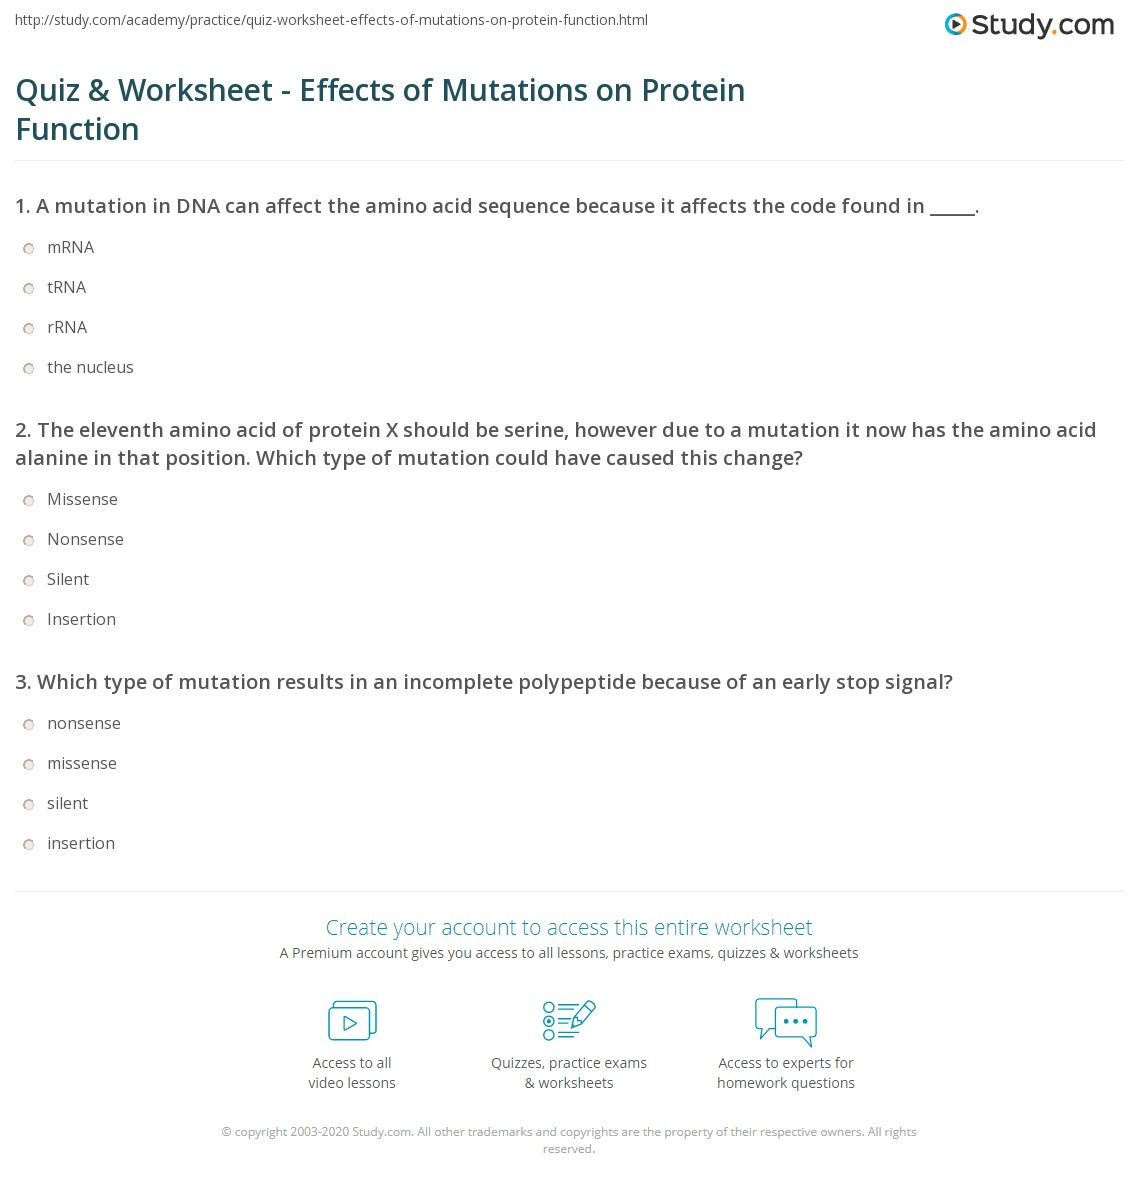 Quiz & Worksheet - Effects of Mutations on Protein Function | Study.com